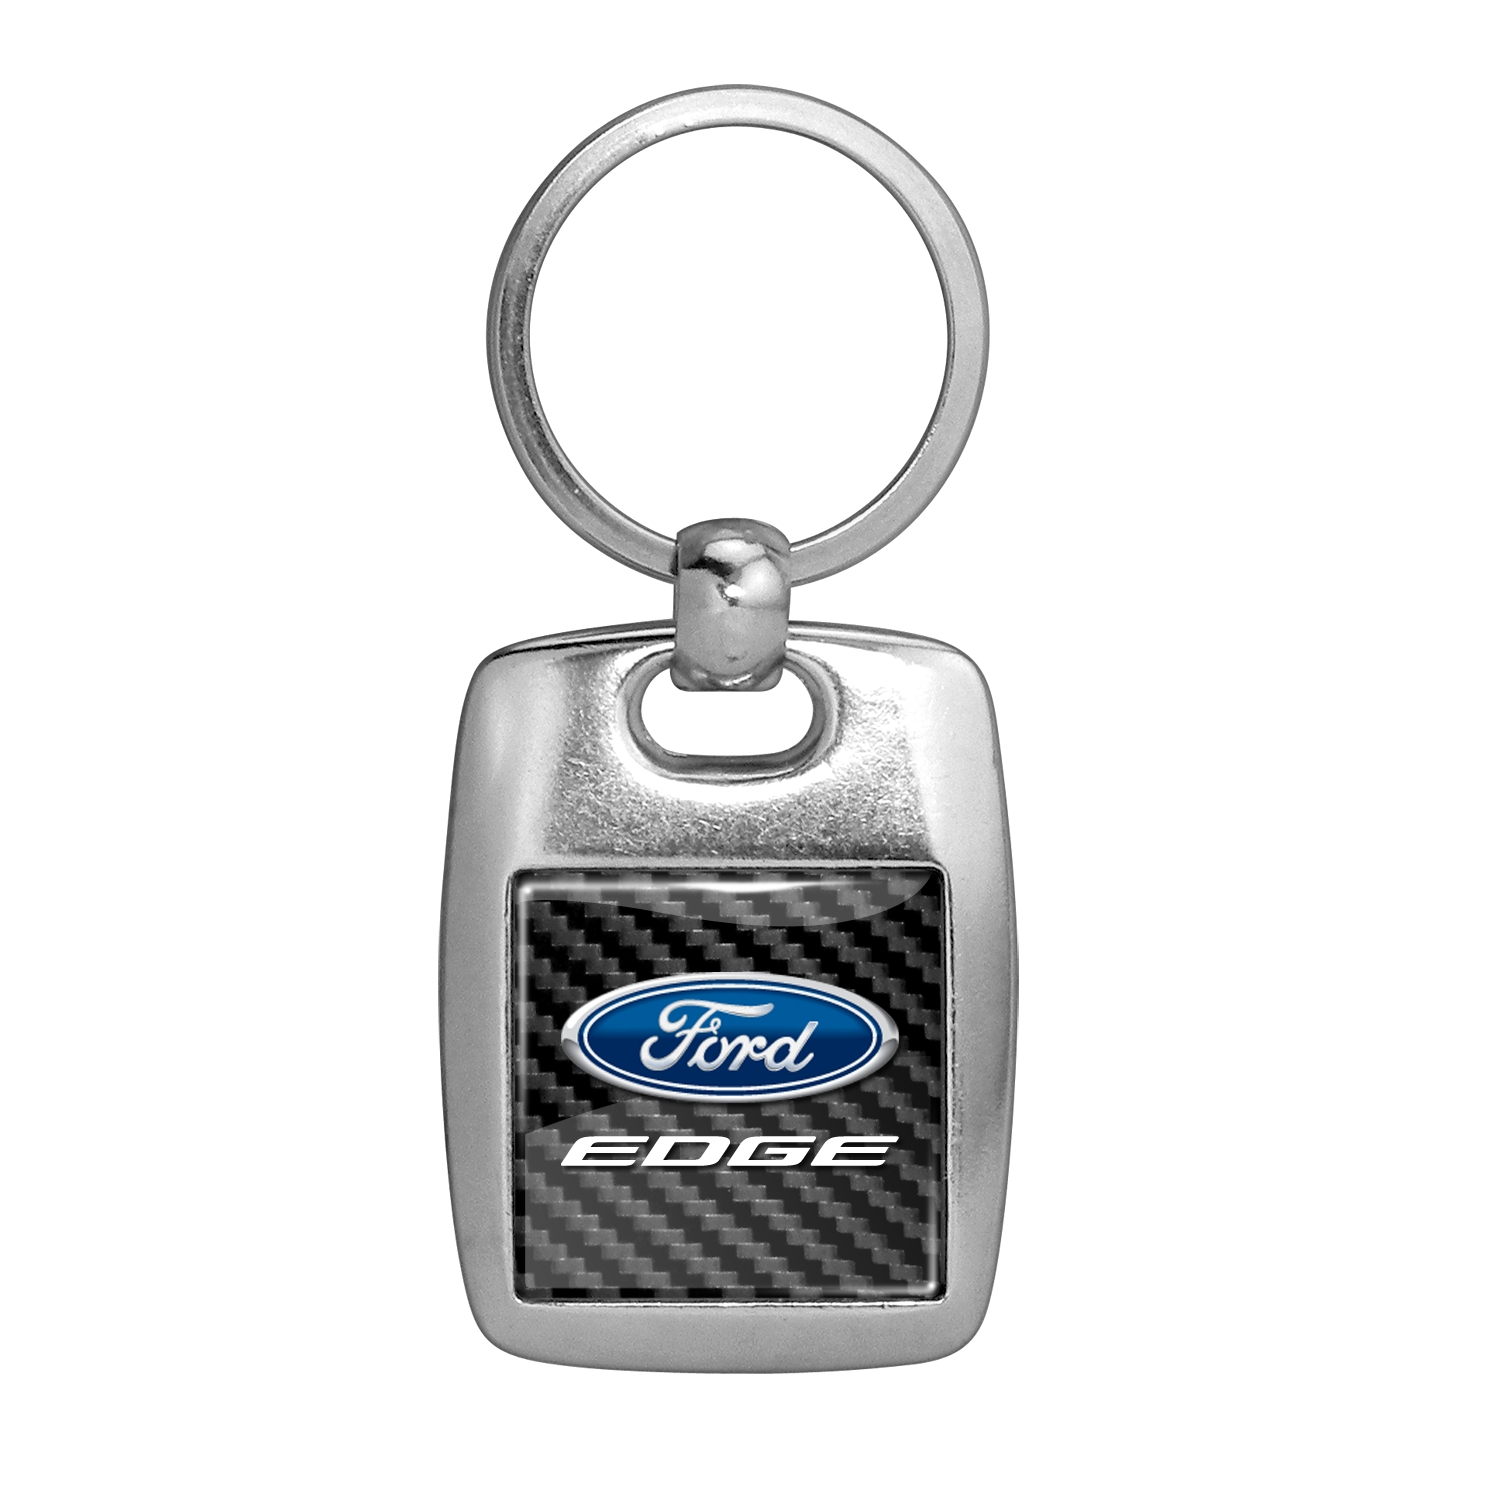 Ford Edge in Color on Carbon Fiber Backing Brush Metal Key Chain